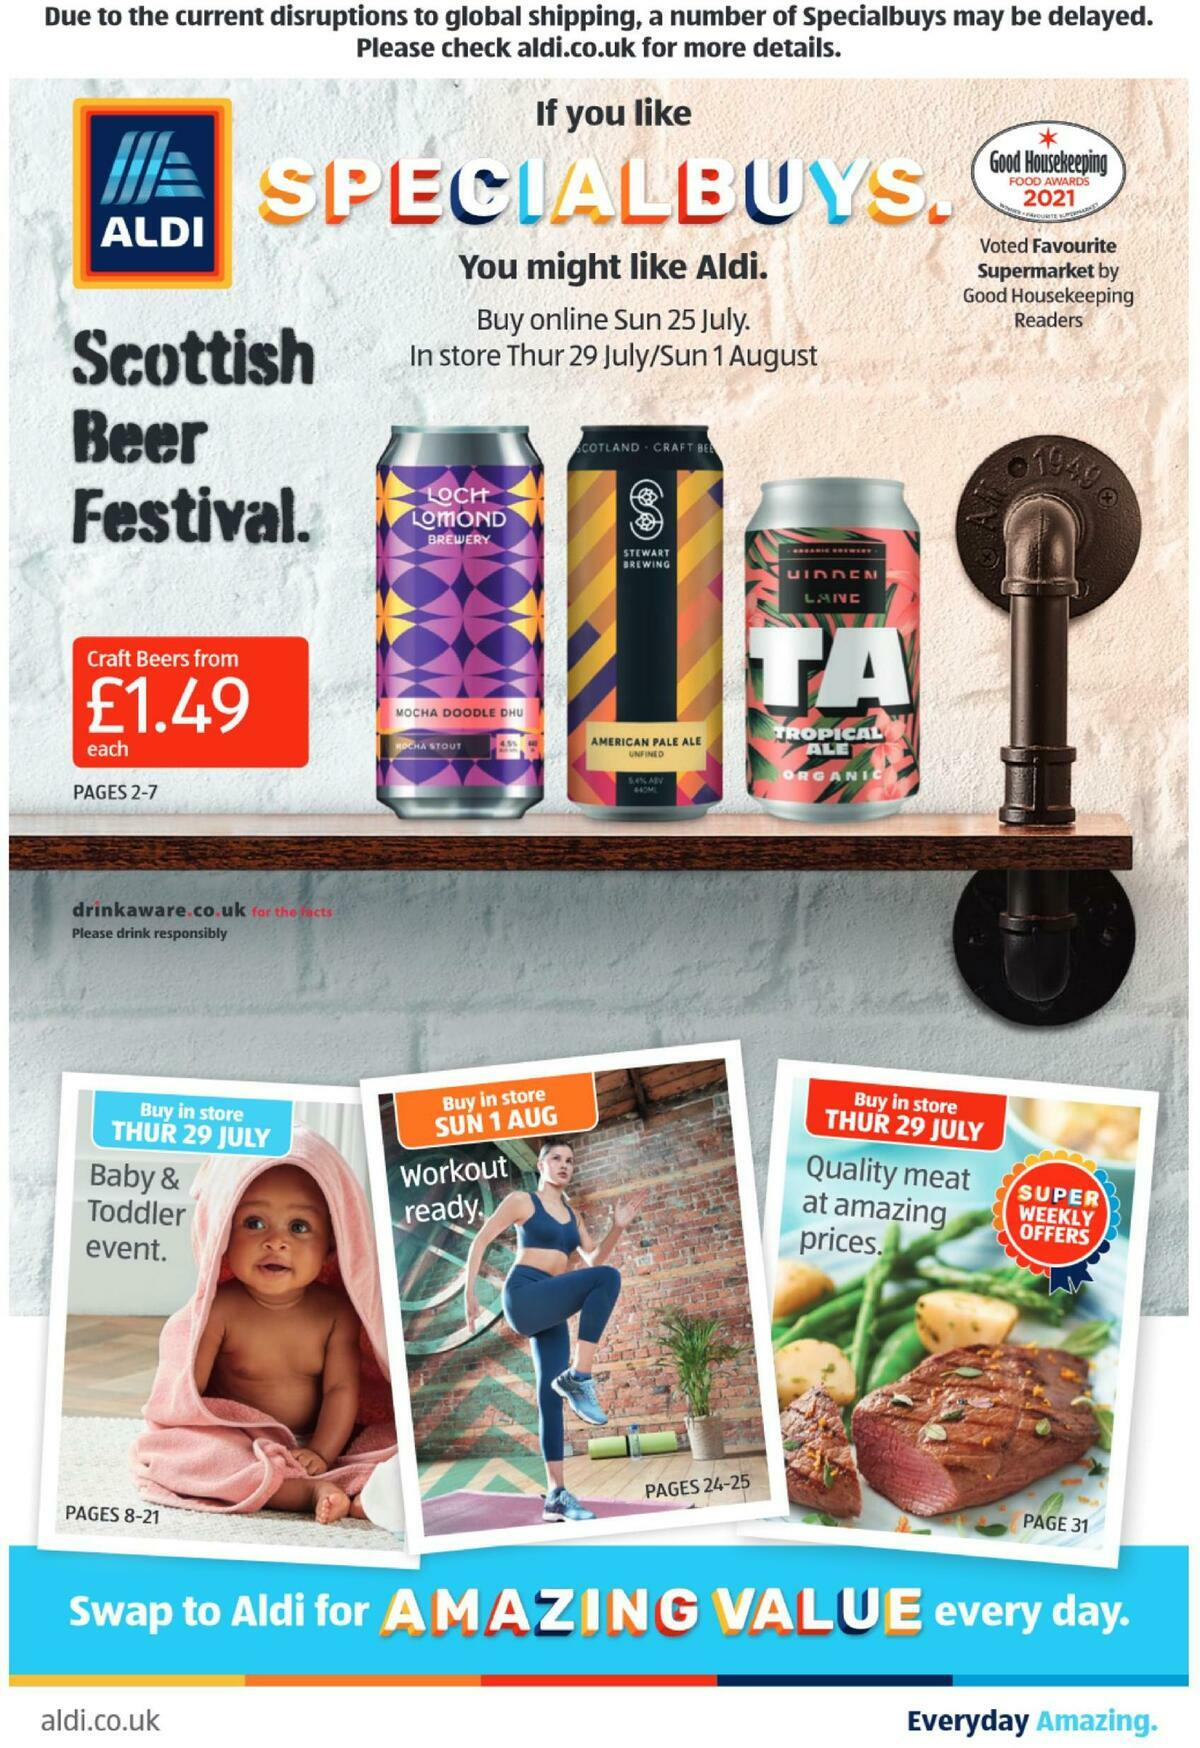 ALDI Scottish Offers from July 25